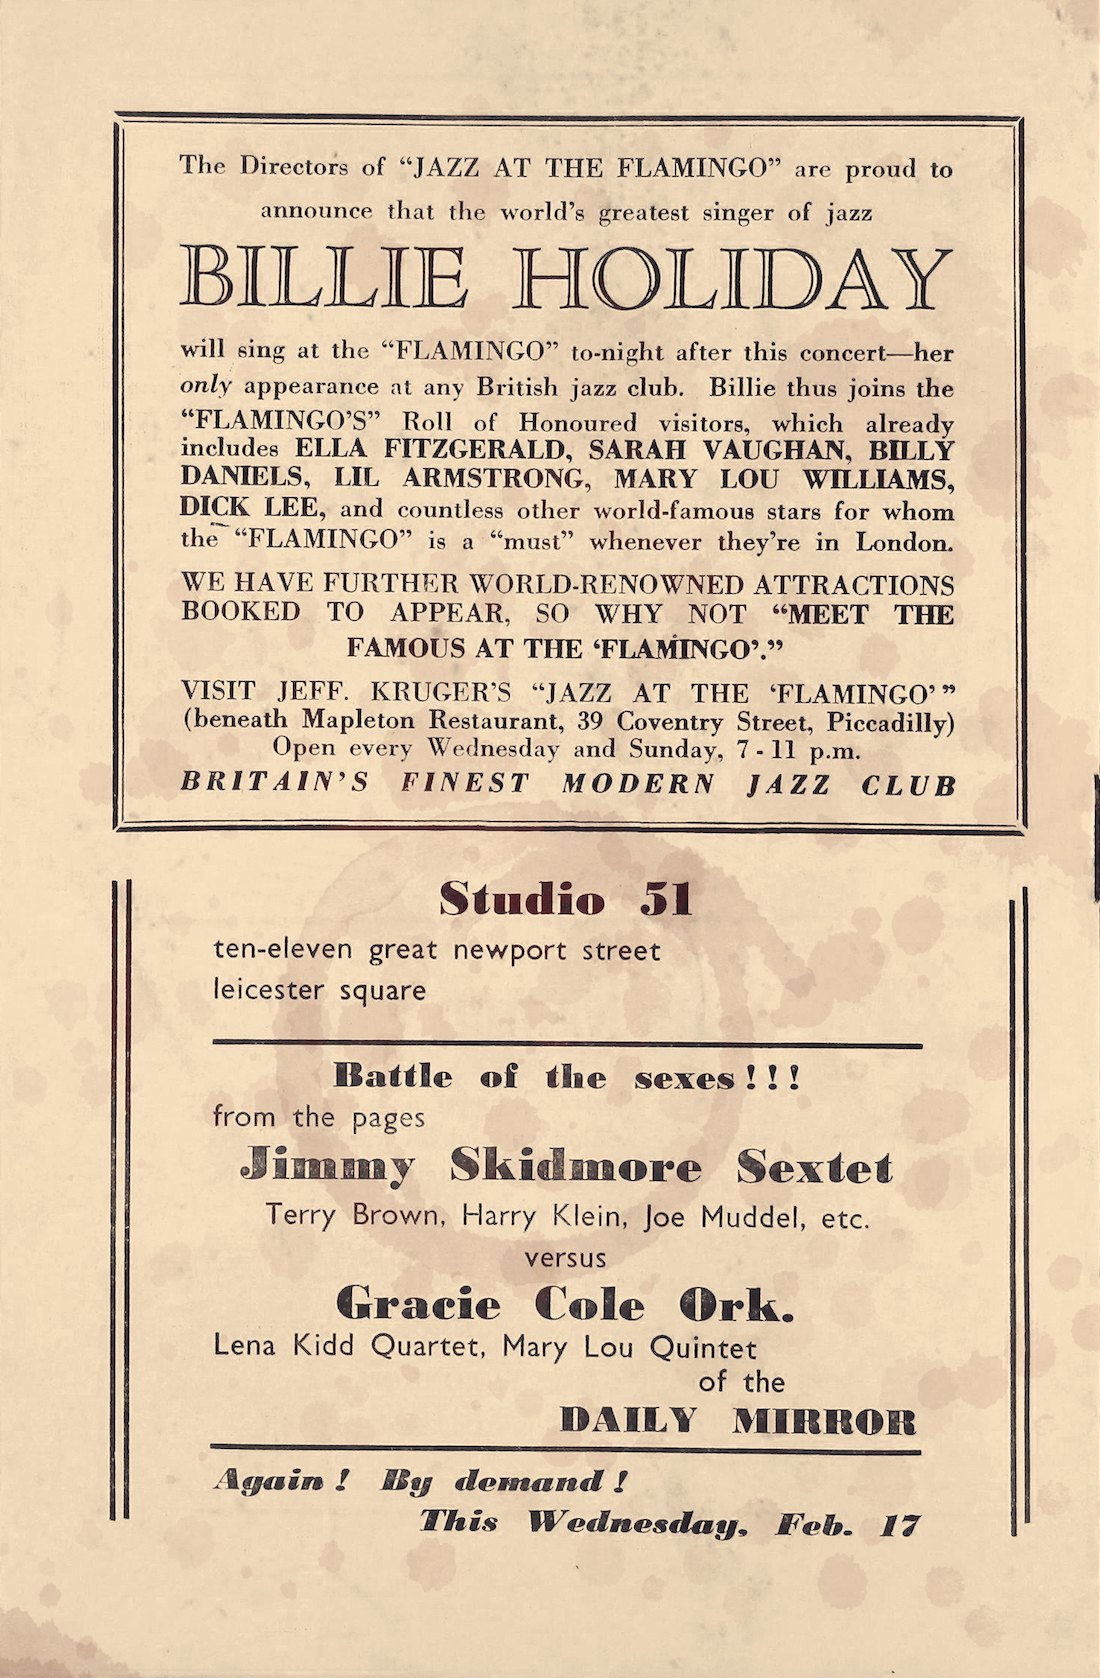 Ad for the Flamingo in the programme for Billie Holiday's appearance at the Royal Albert Hall